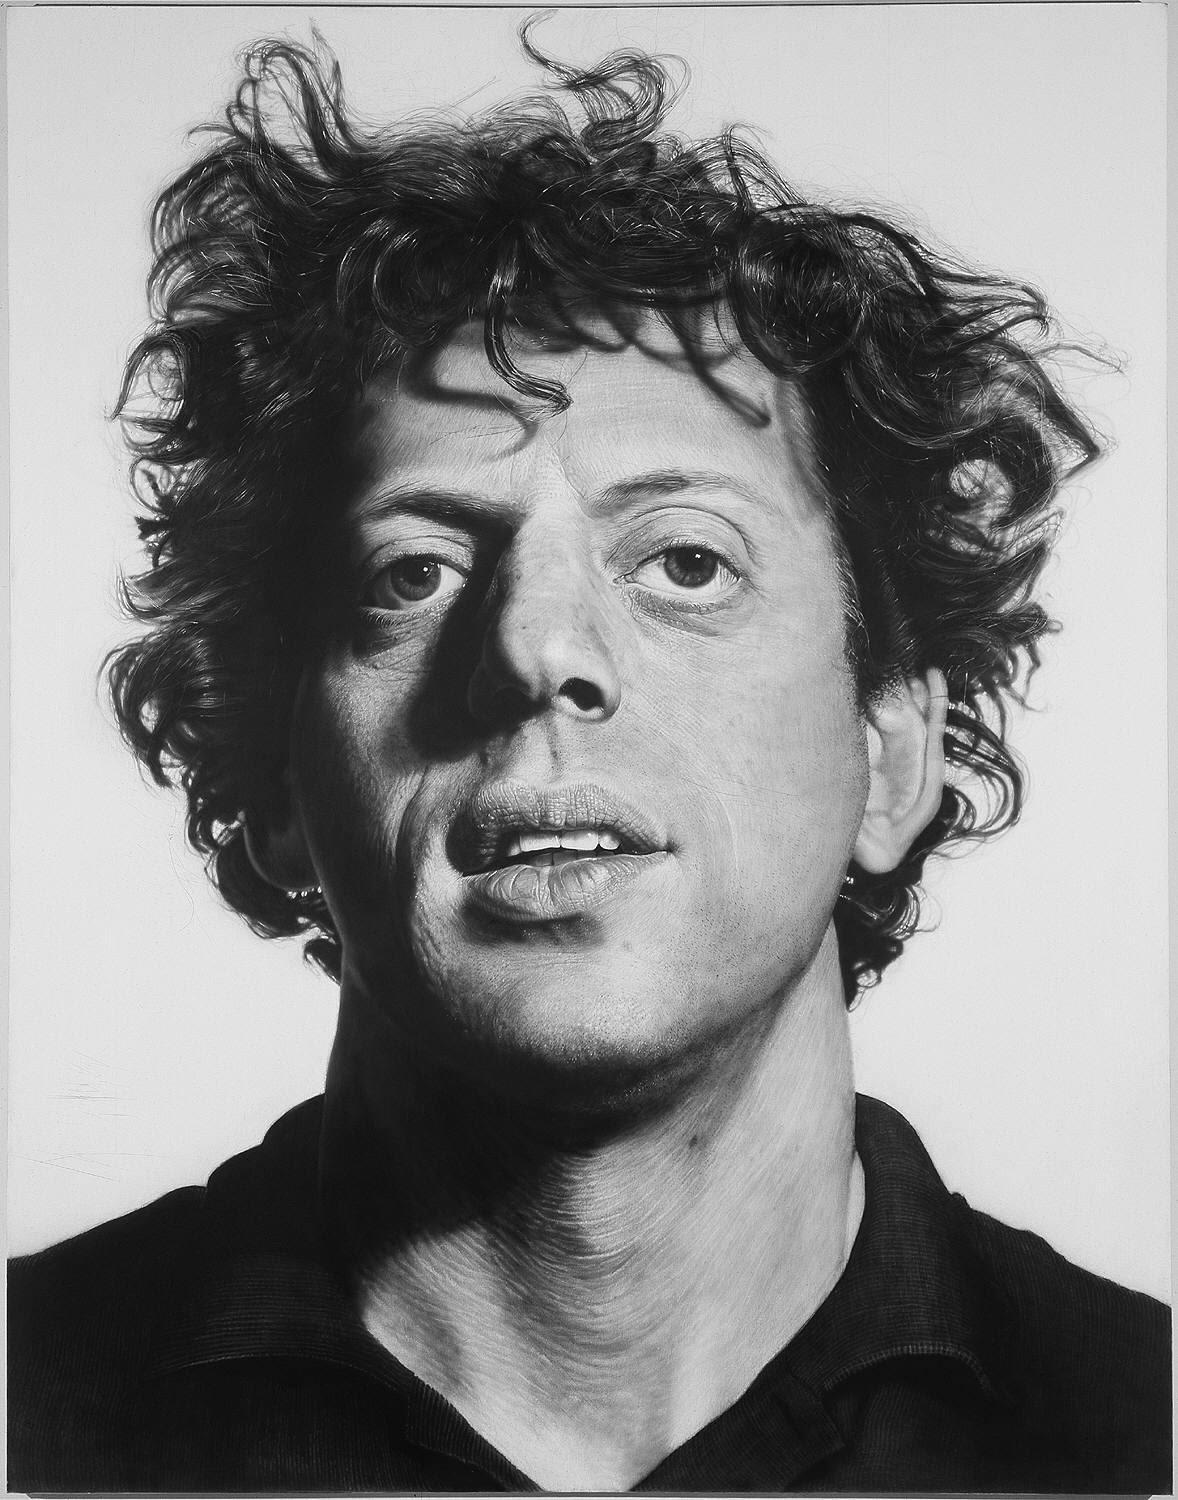 Philip Glass, Chuck Close, 1969. Fotoğraf:vasisdas.com